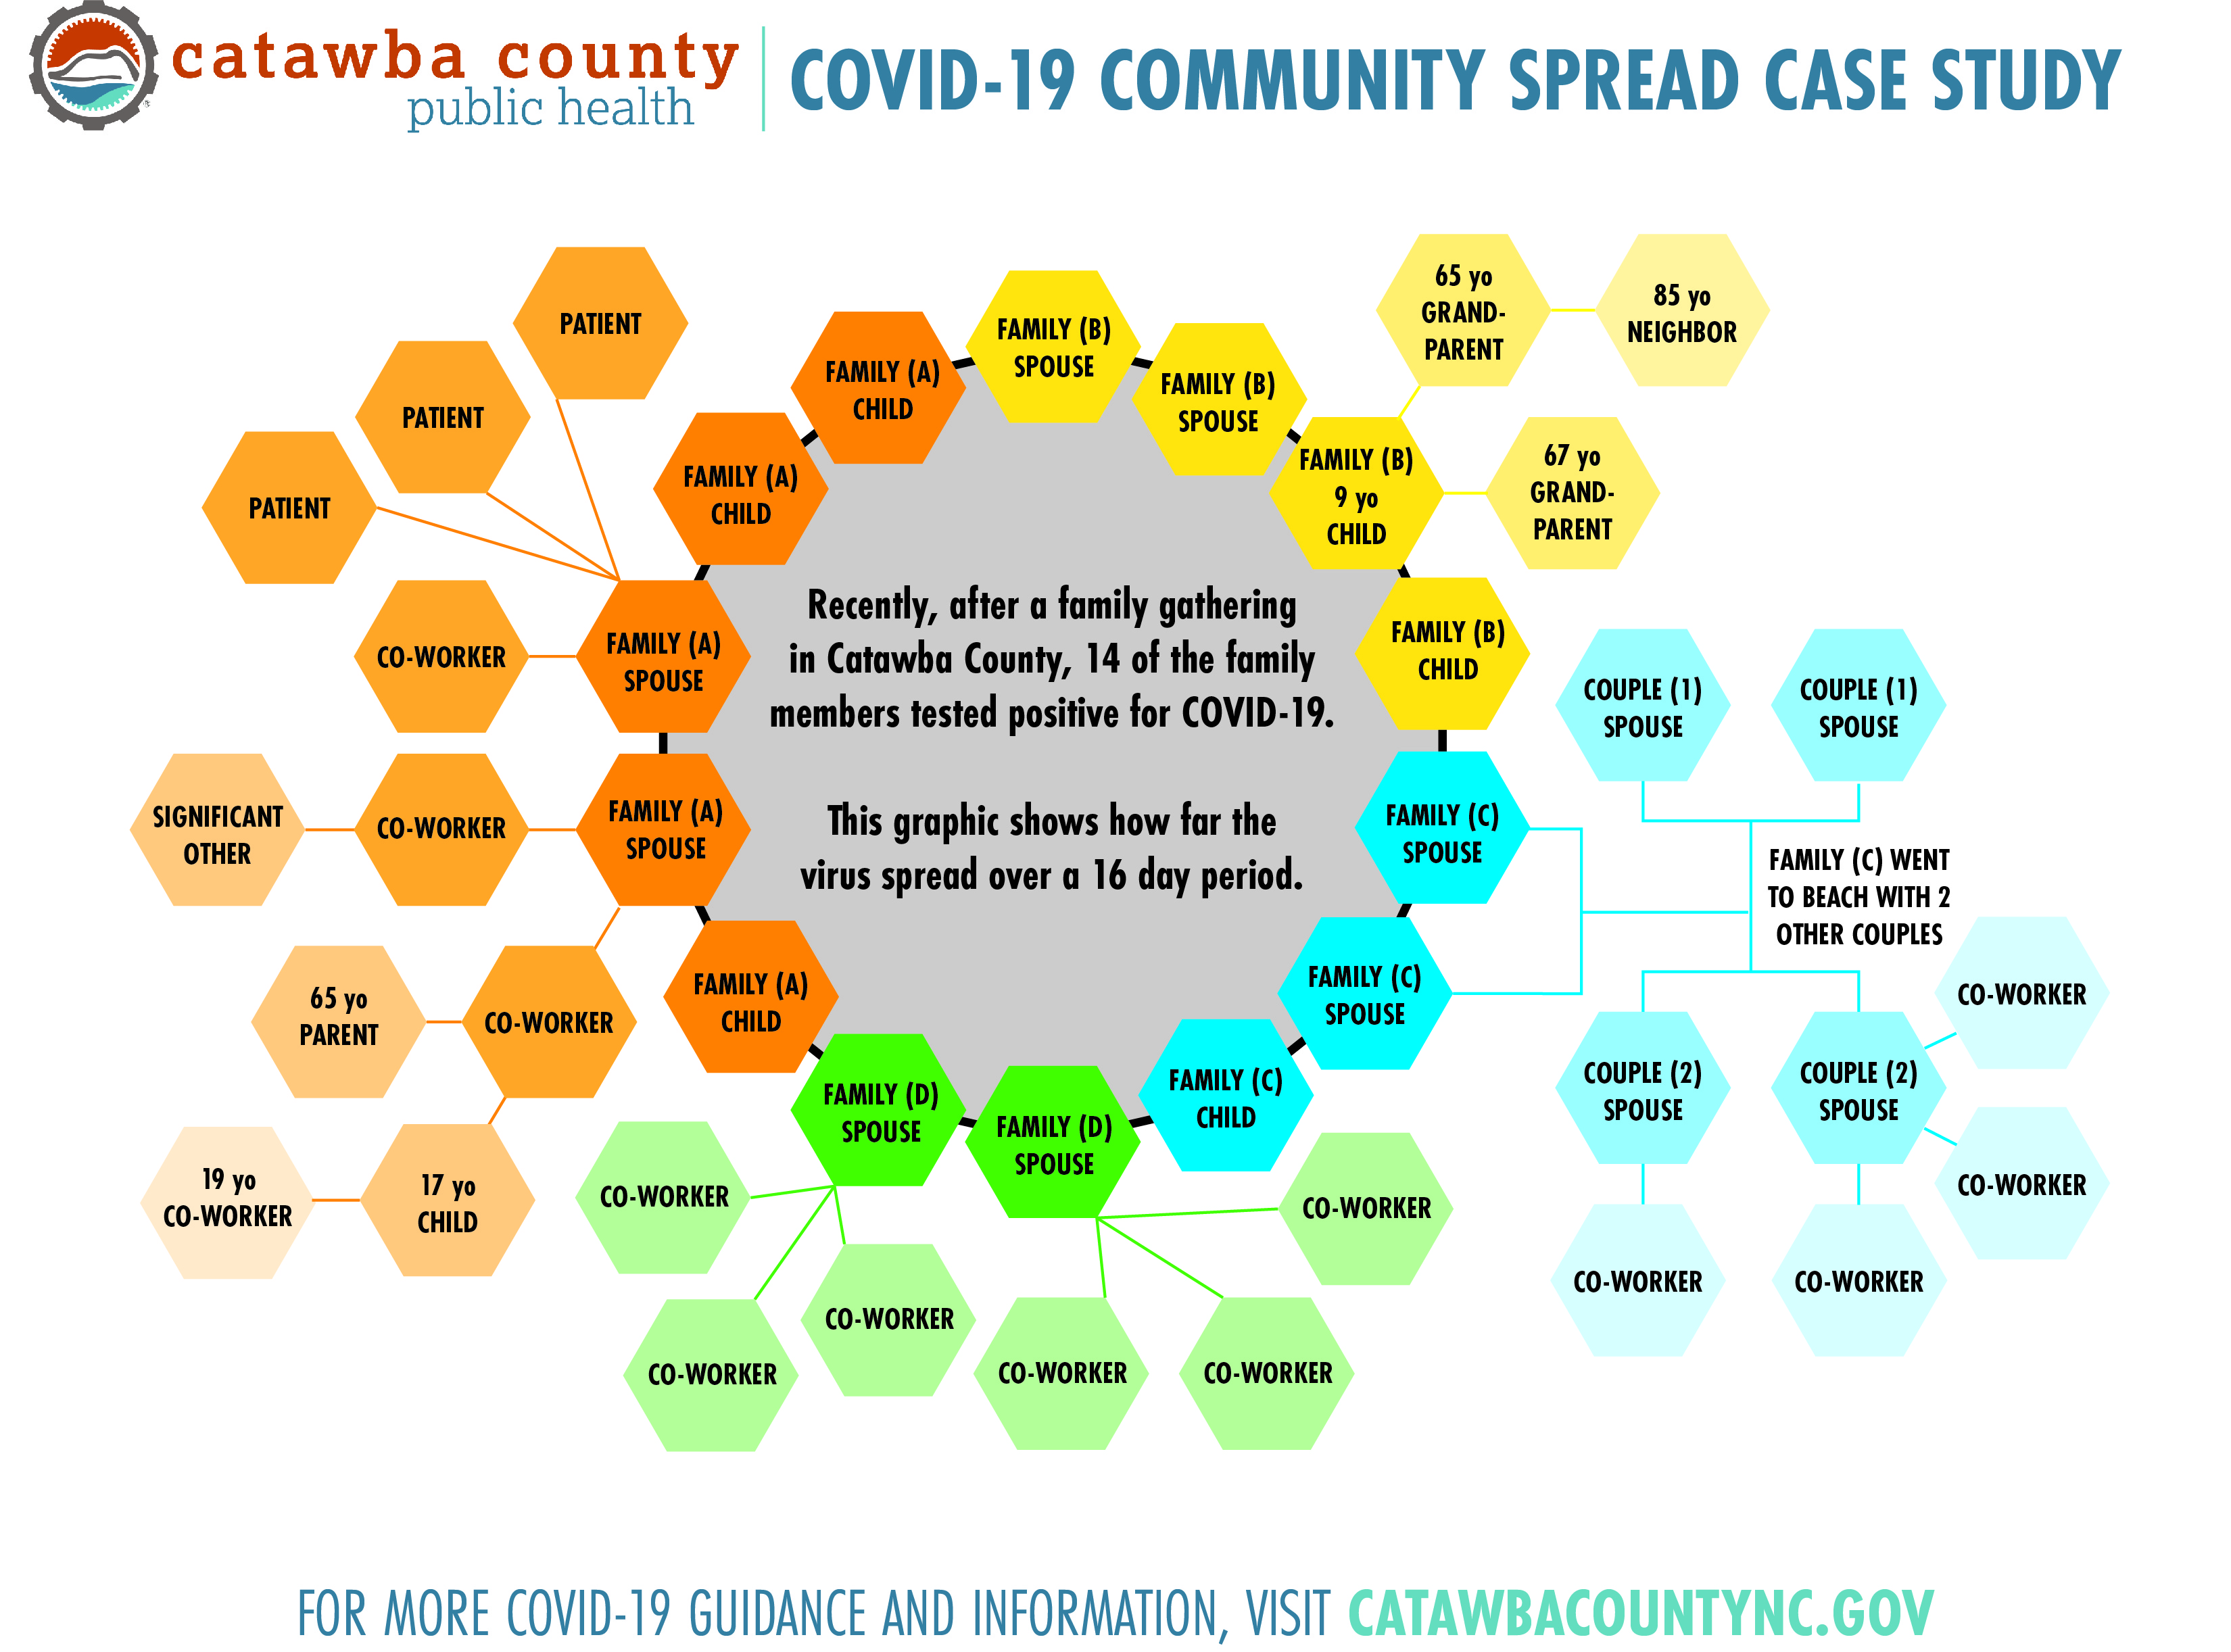 COVID-19 in Catawba County: A Case Study